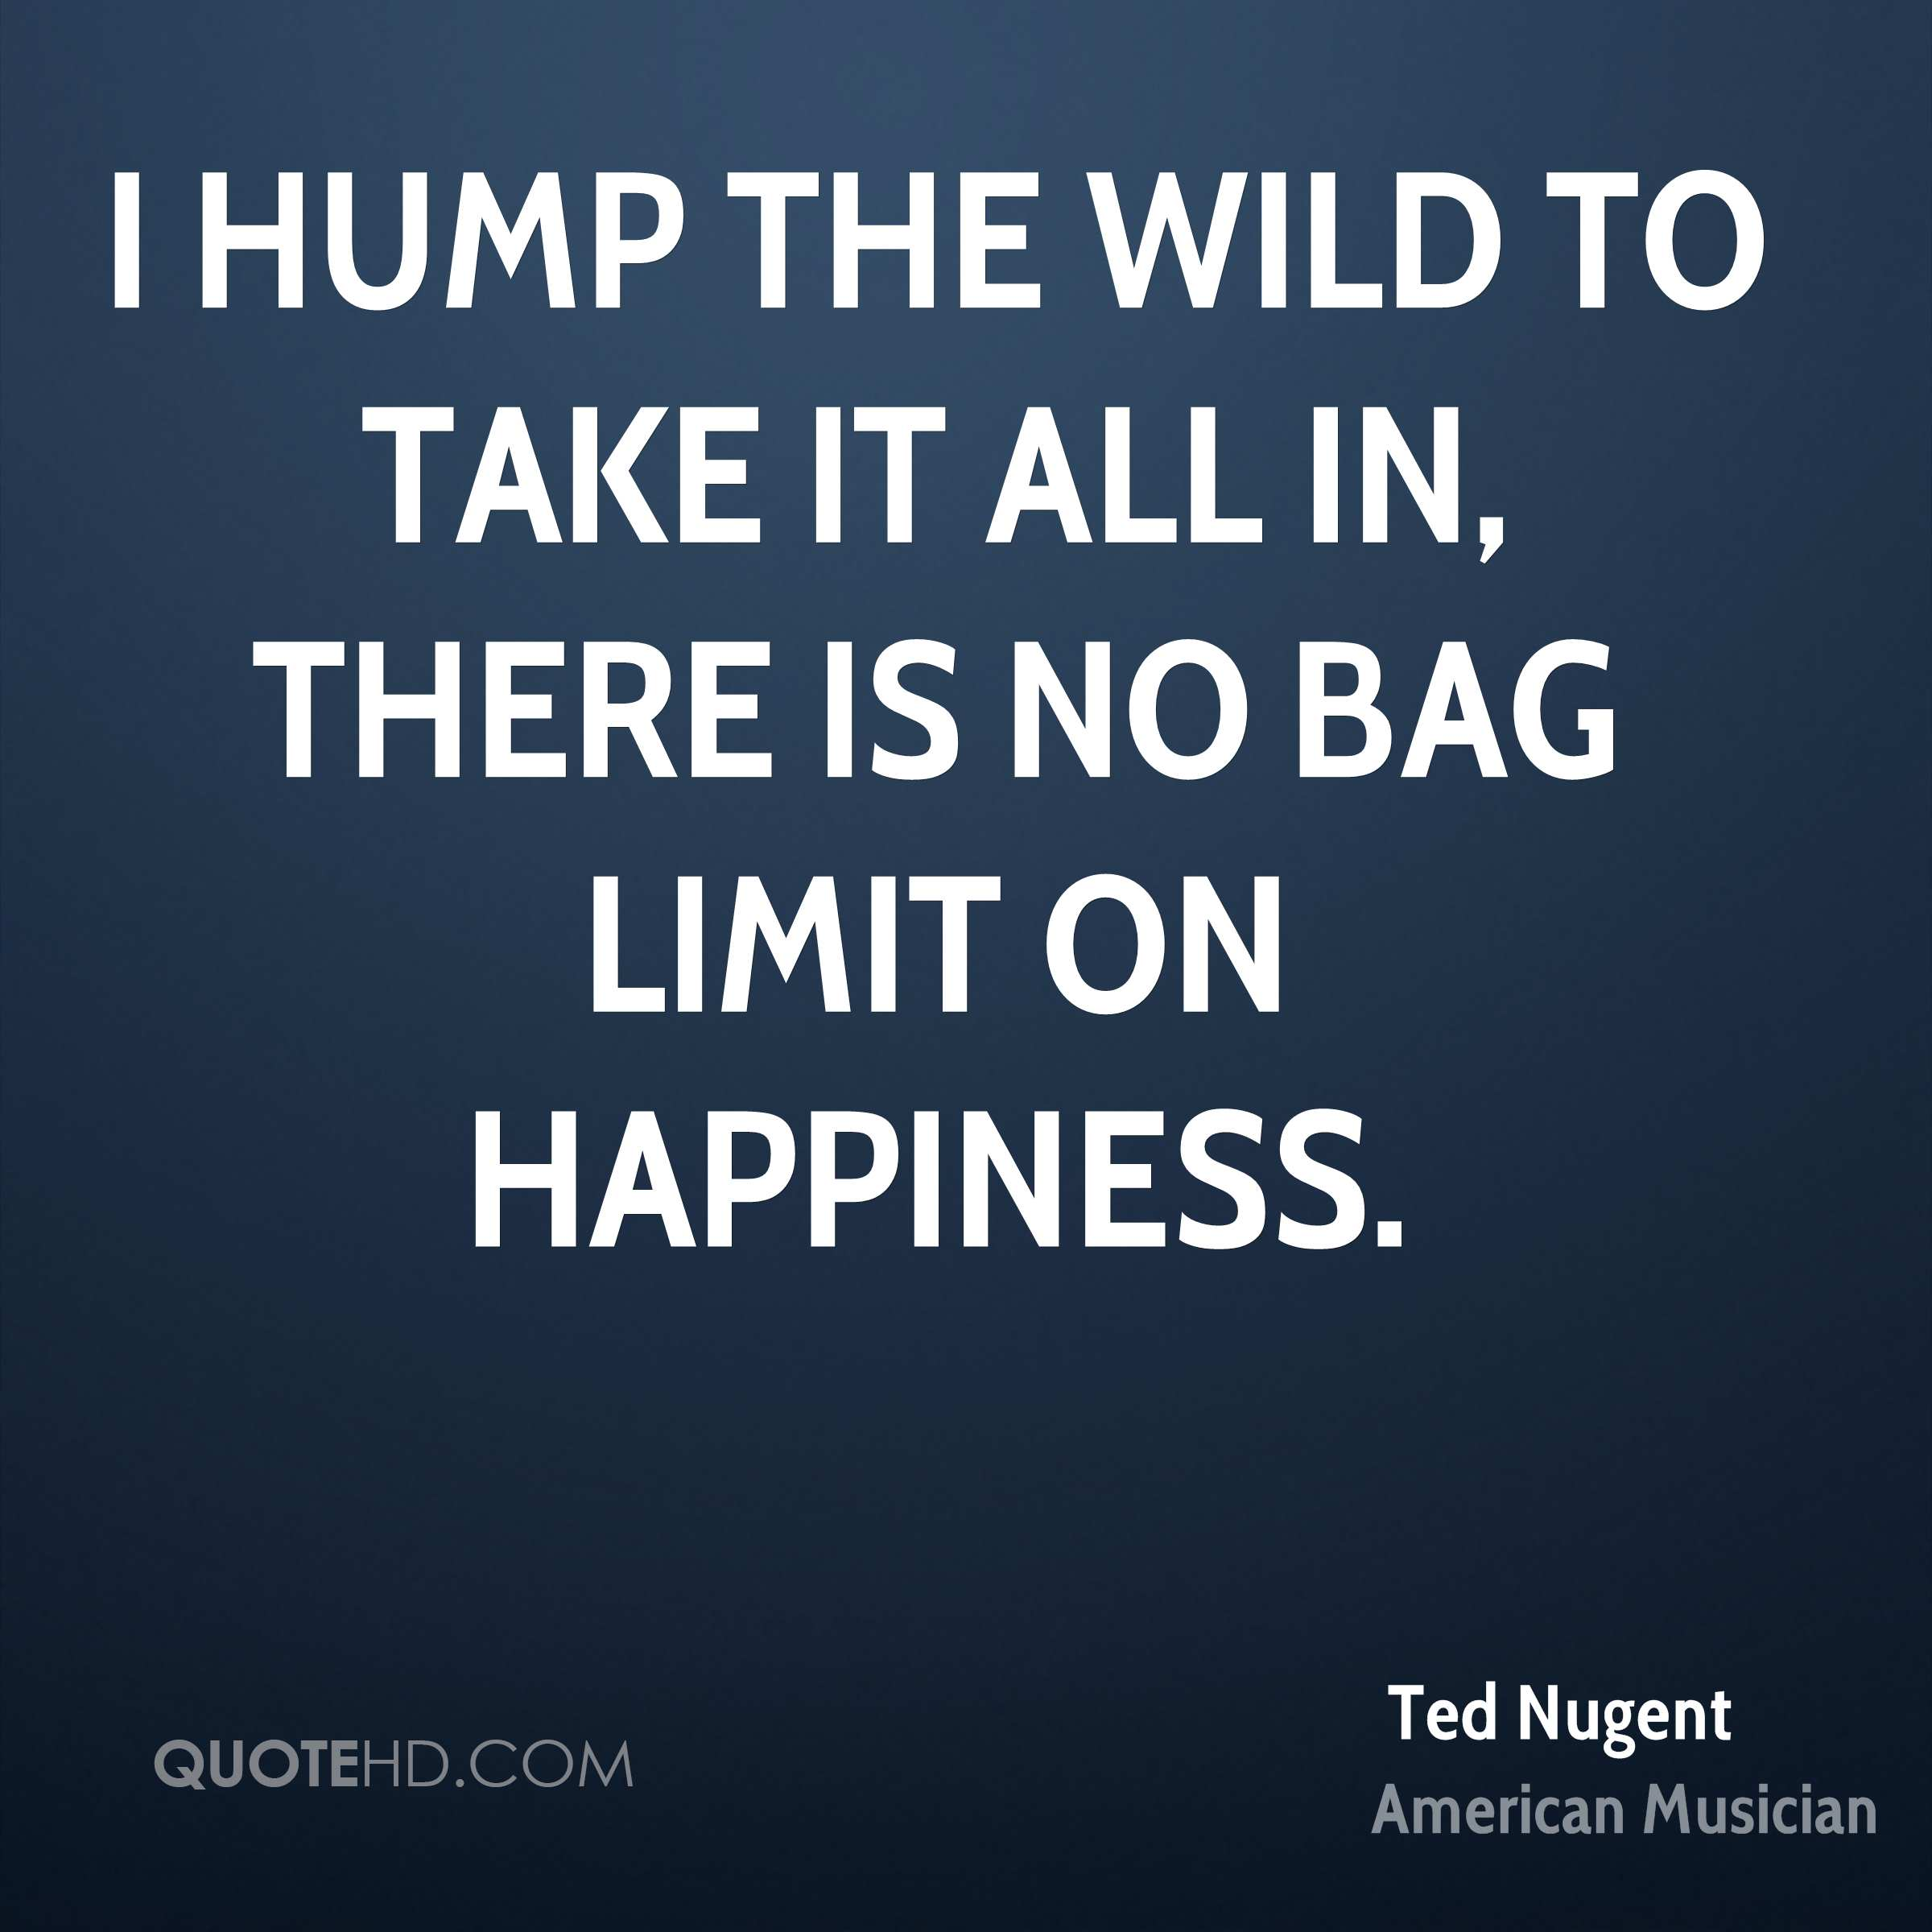 I hump the wild to take it all in, there is no bag limit on happiness.